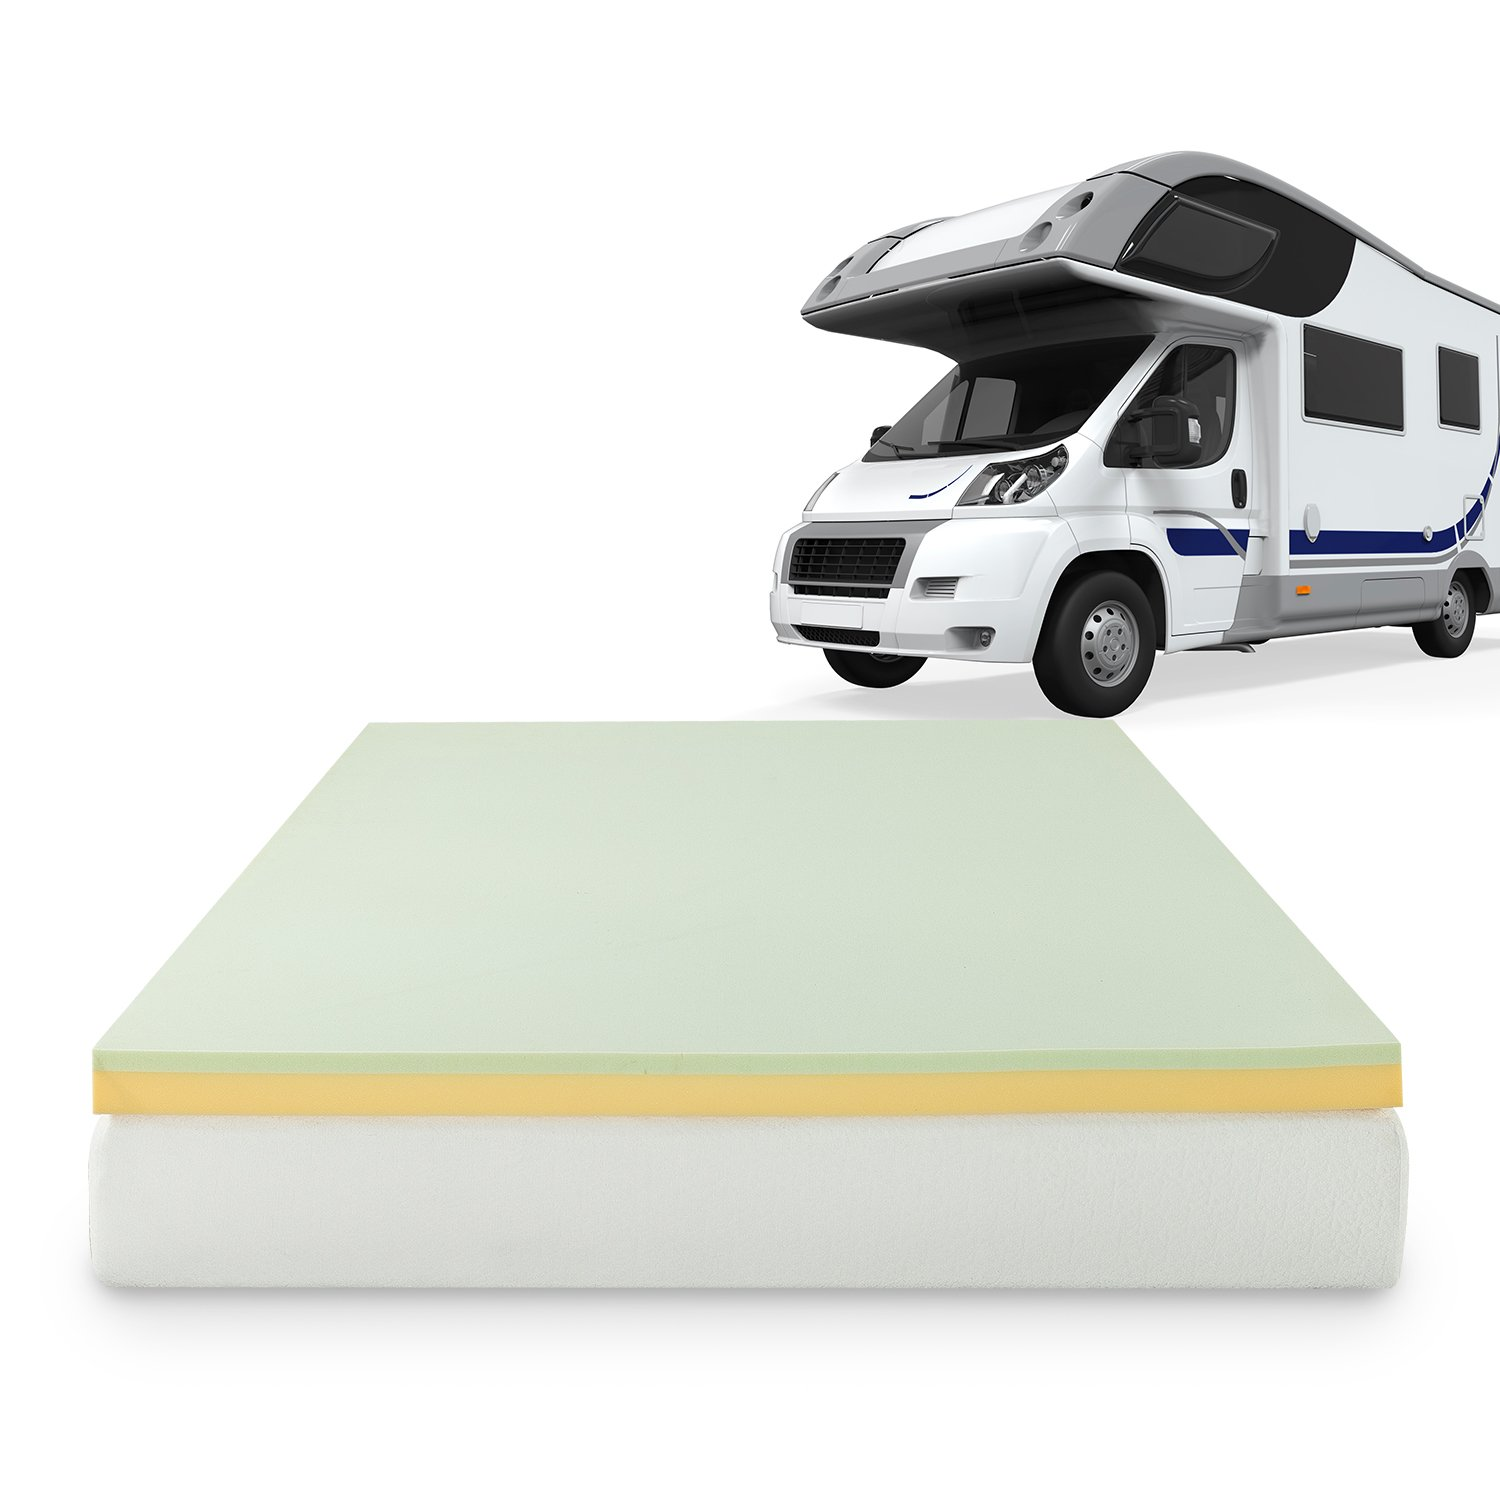 The Best Rv Mattress Toppers Amp Pads Reviews In 2019